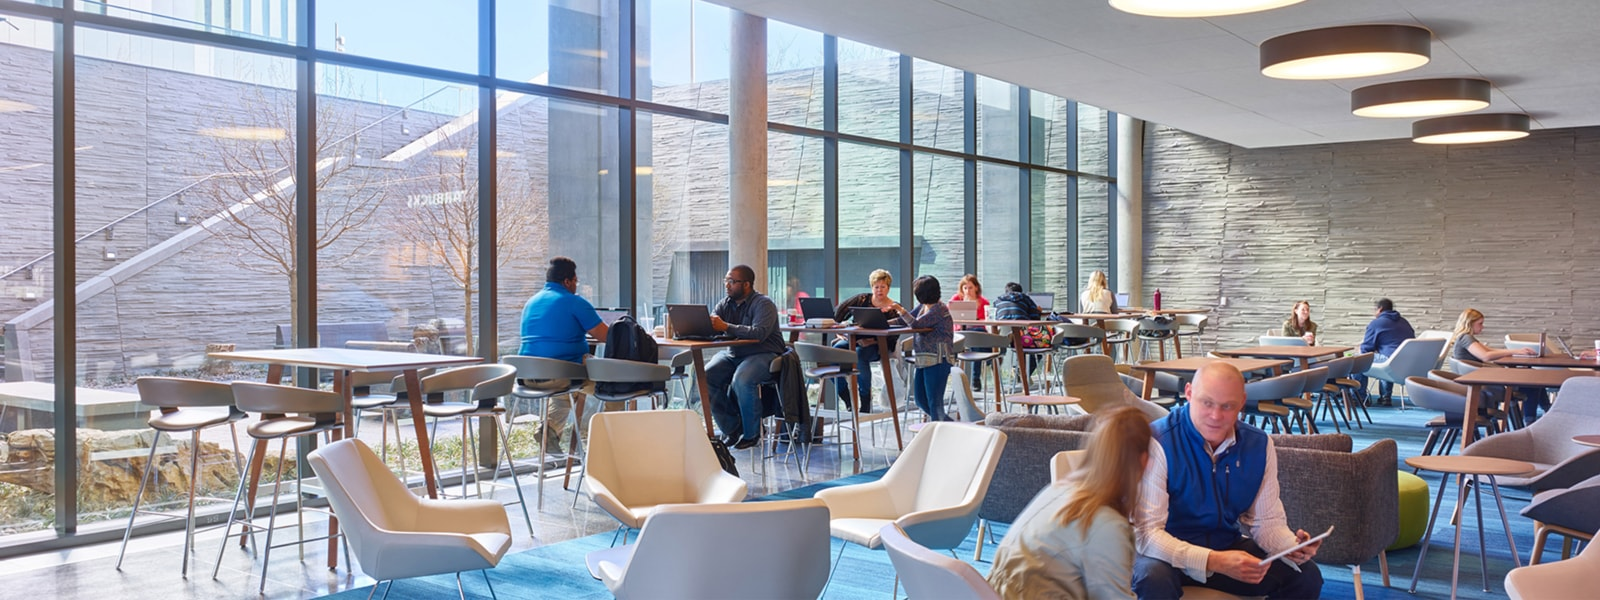 A cafeteria in an office with many people working in comfortable chairs and at tables.